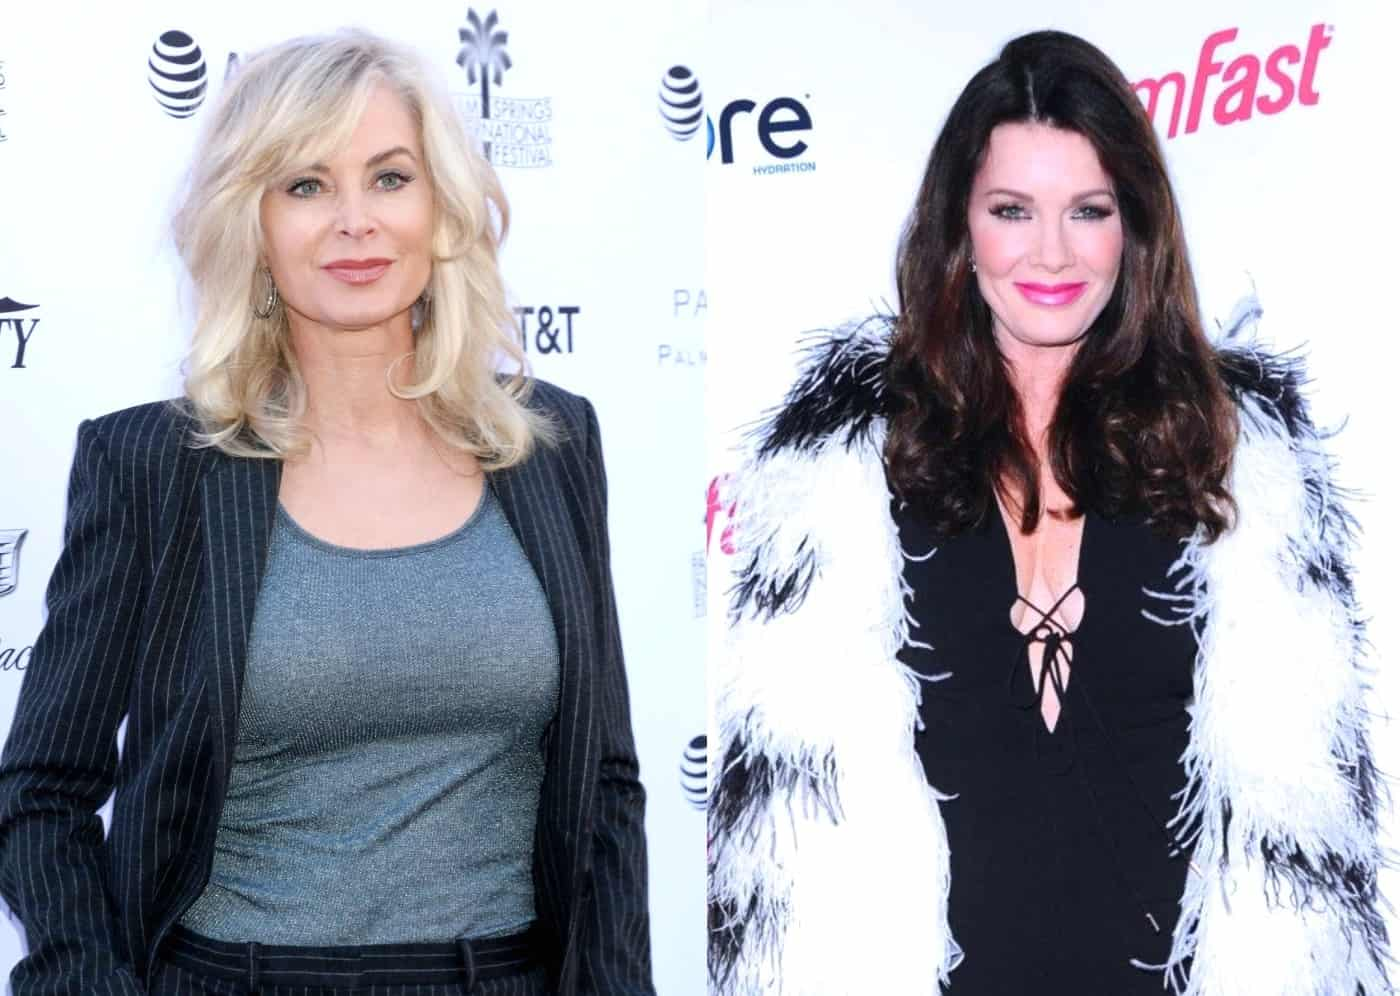 RHOBH Eileen Davidson Throws Shade at Lisa Vanderpump